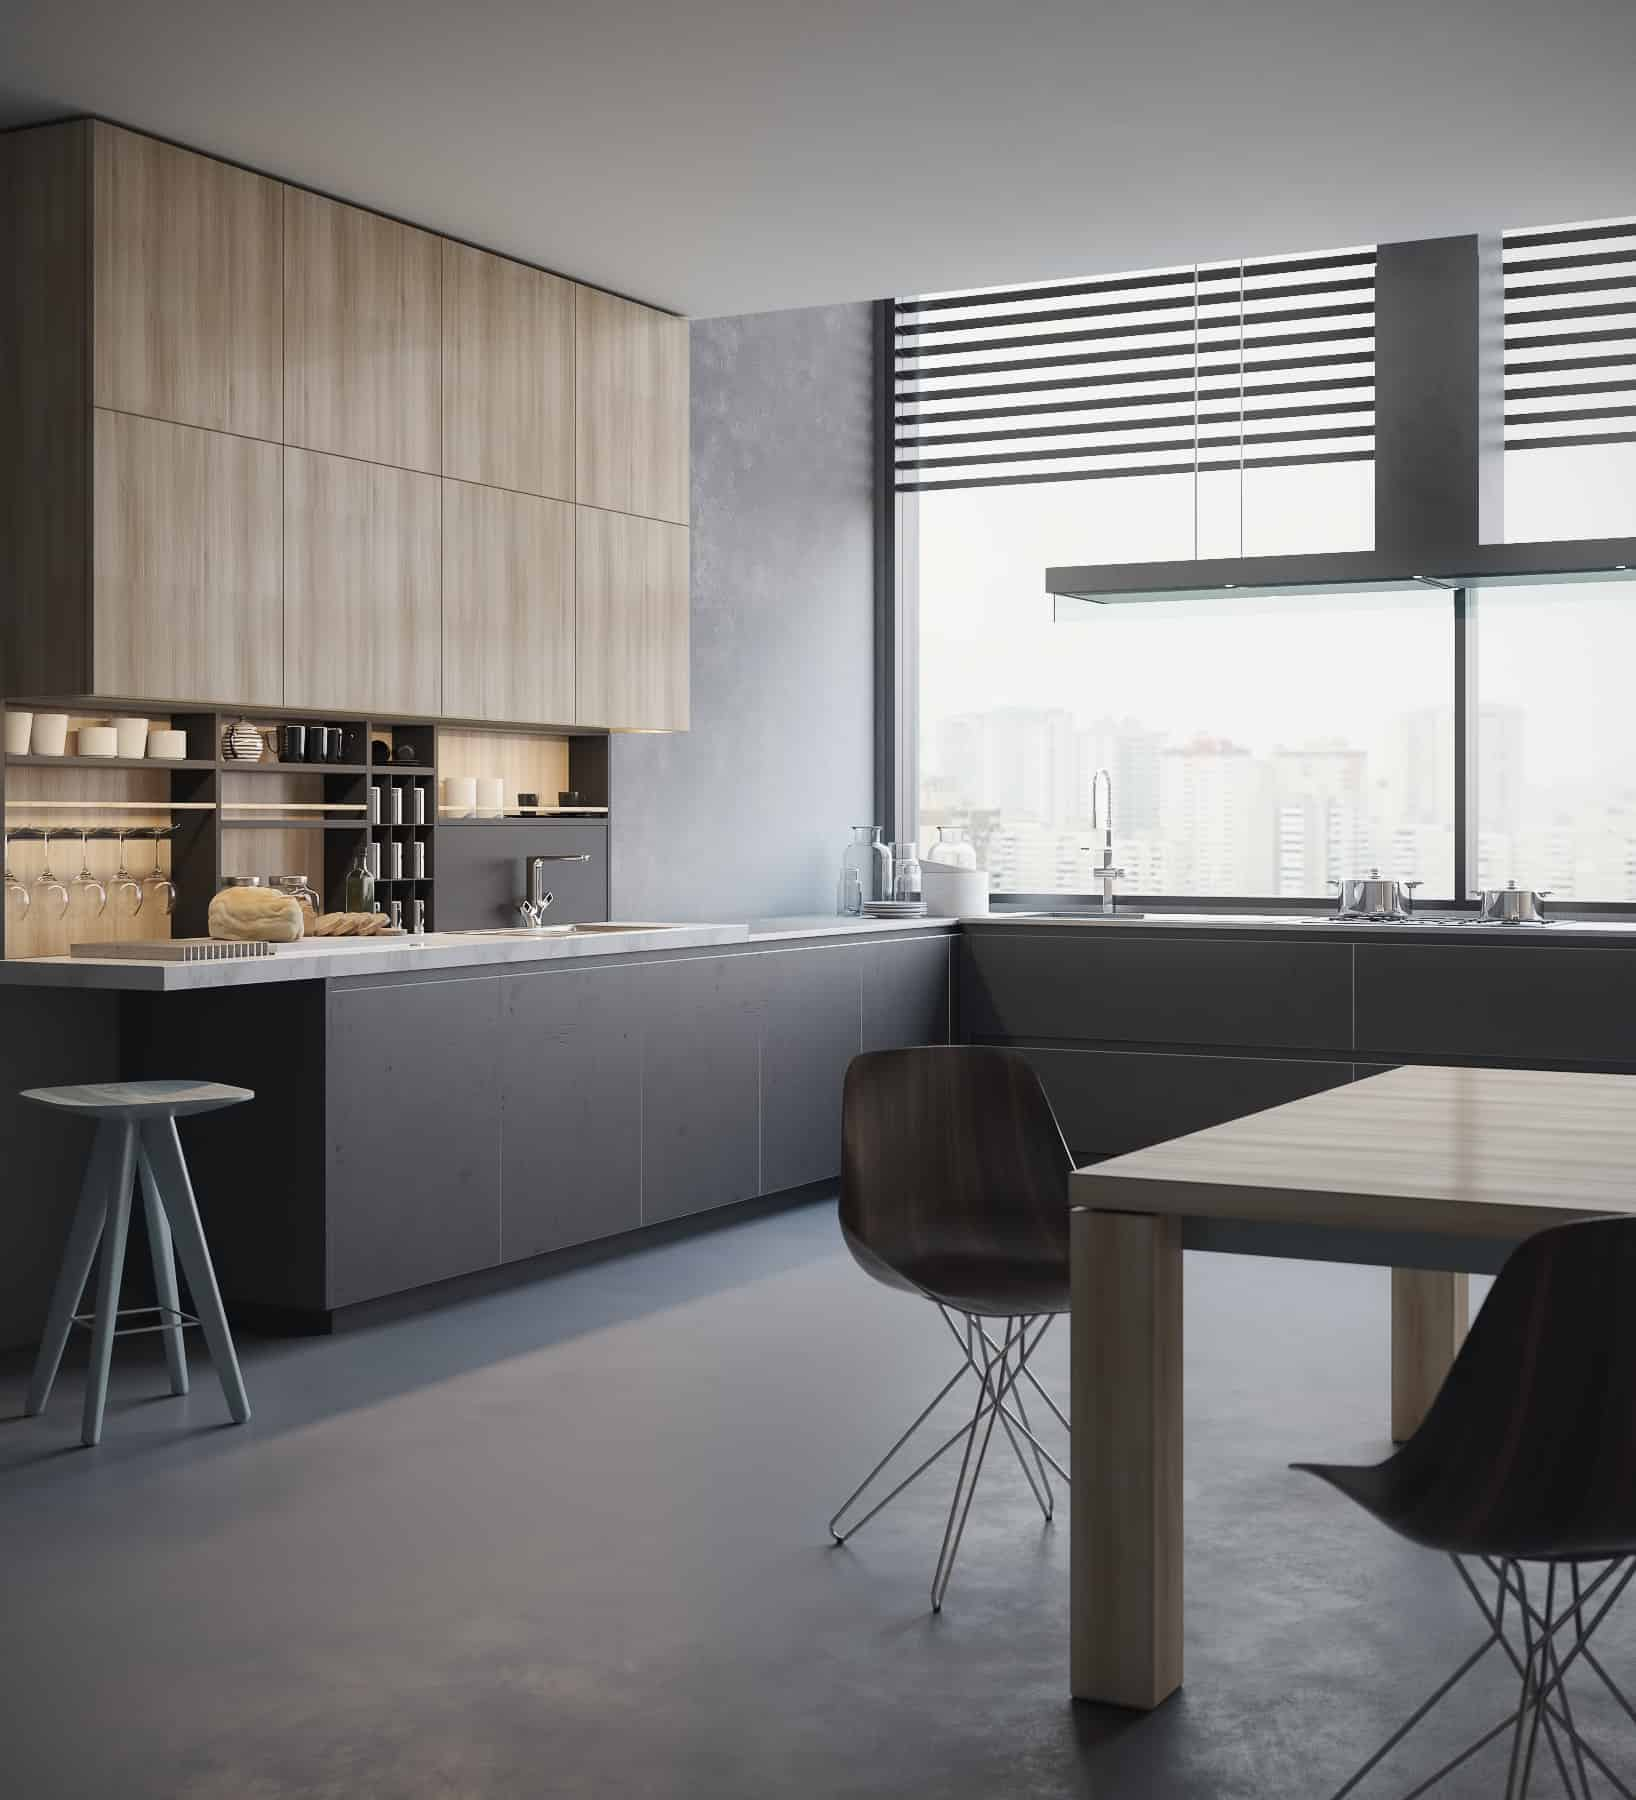 Poliform Kitchen Design. I just look some pictures and photos of interiors in web to find  inspiration After that i create my projects based on design nice Kitchen 3D visualization Poliform by Aleksey Krivosheyev